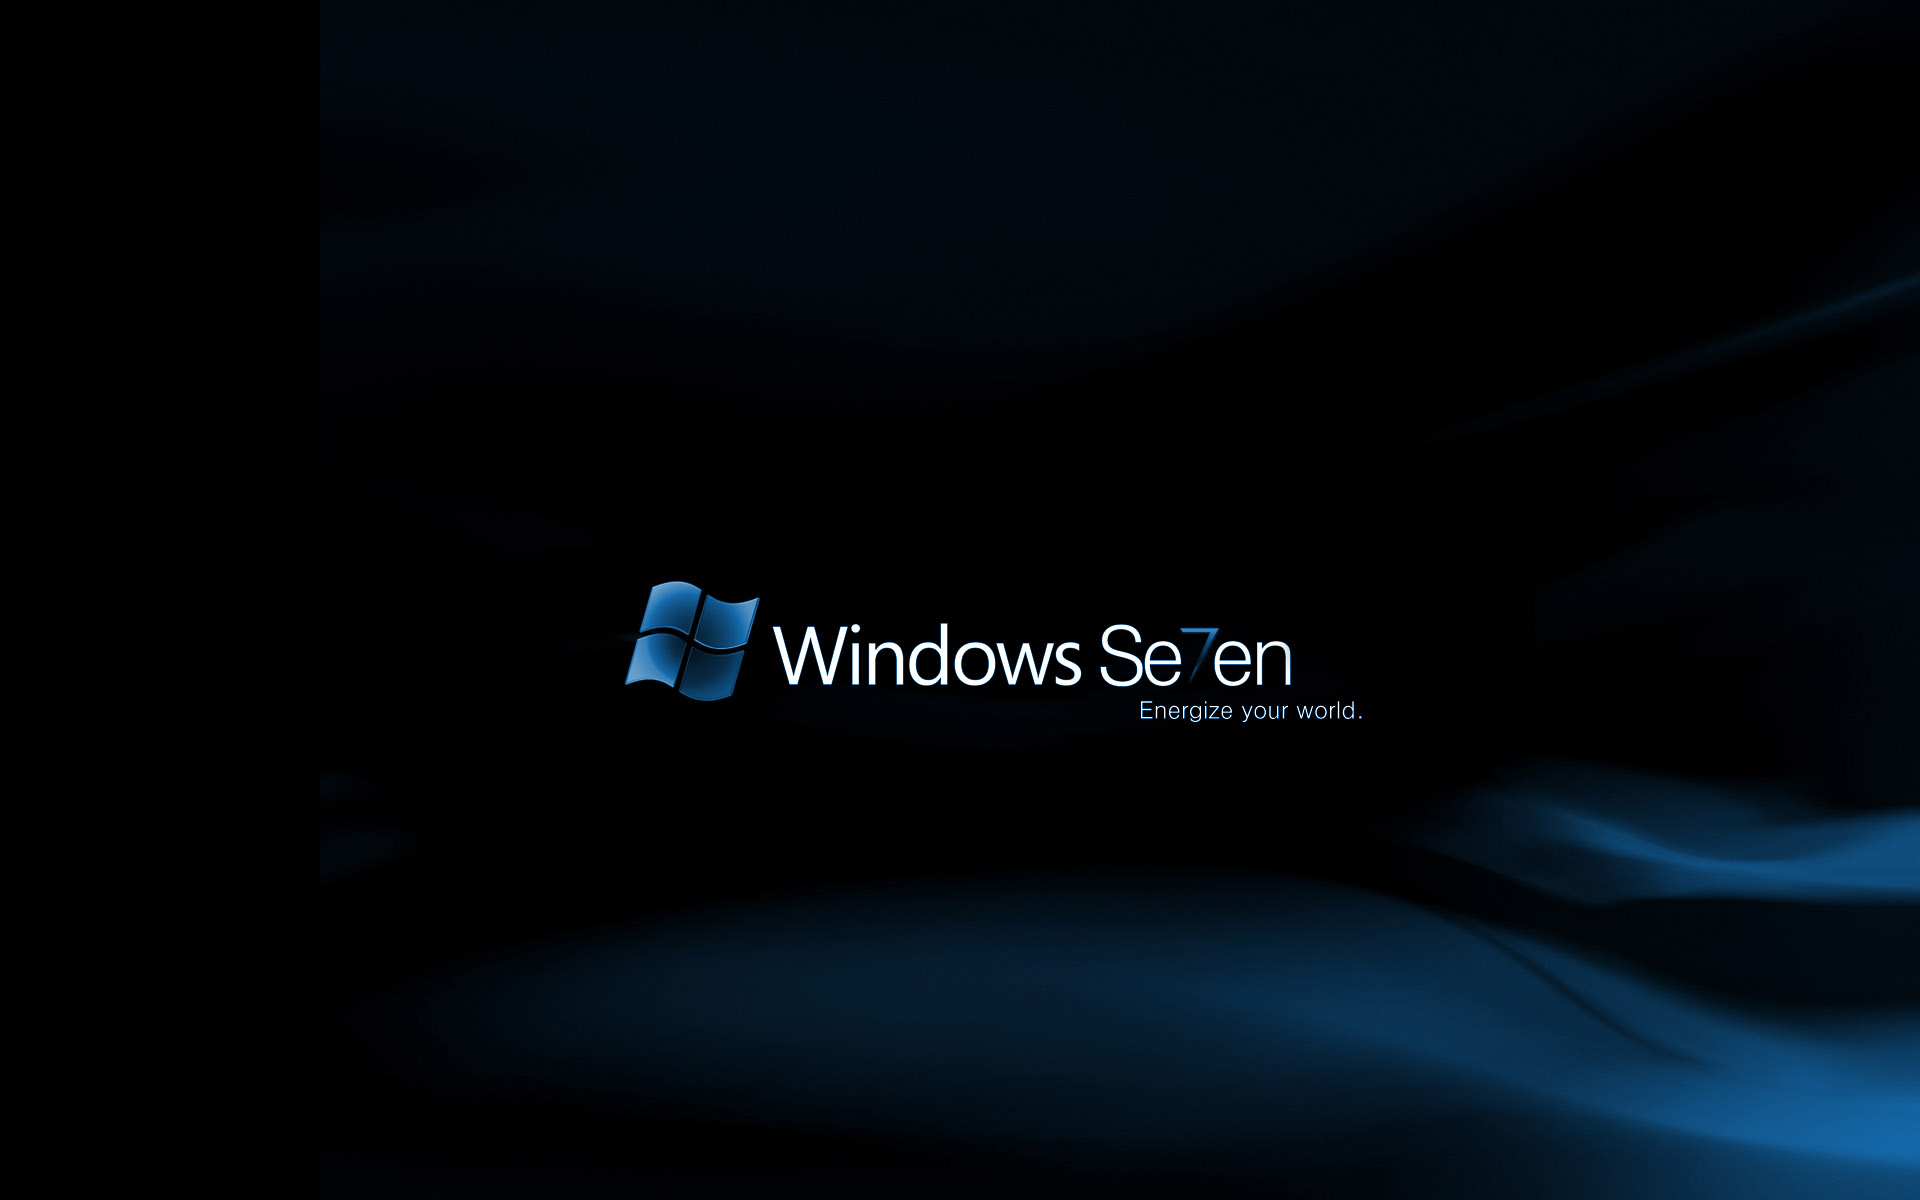 Unduh 107 Wallpaper Bergerak Pc Windows 7 HD Paling Keren